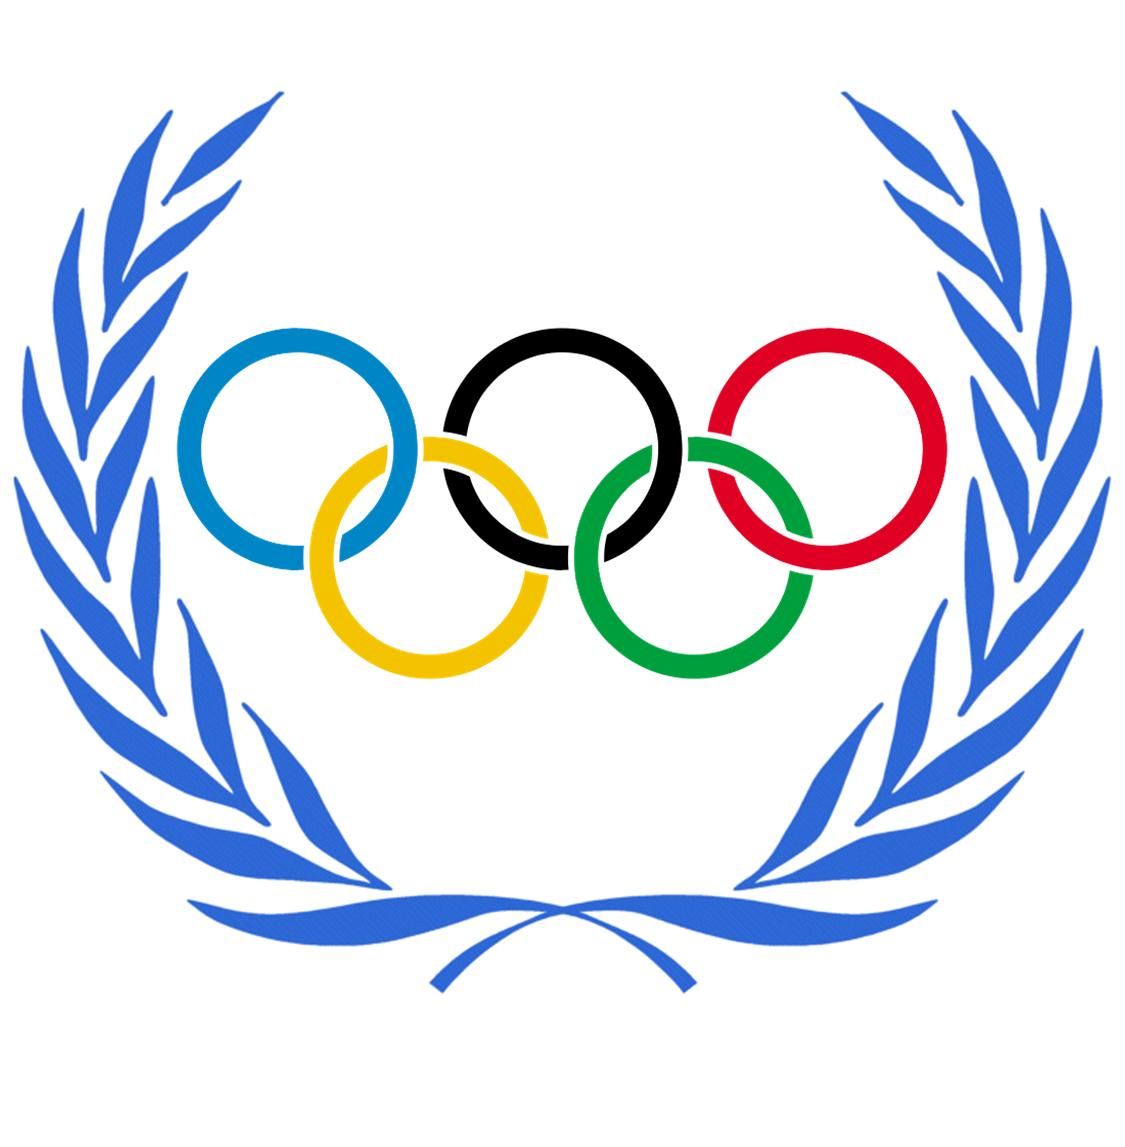 Olympic symbol clipart